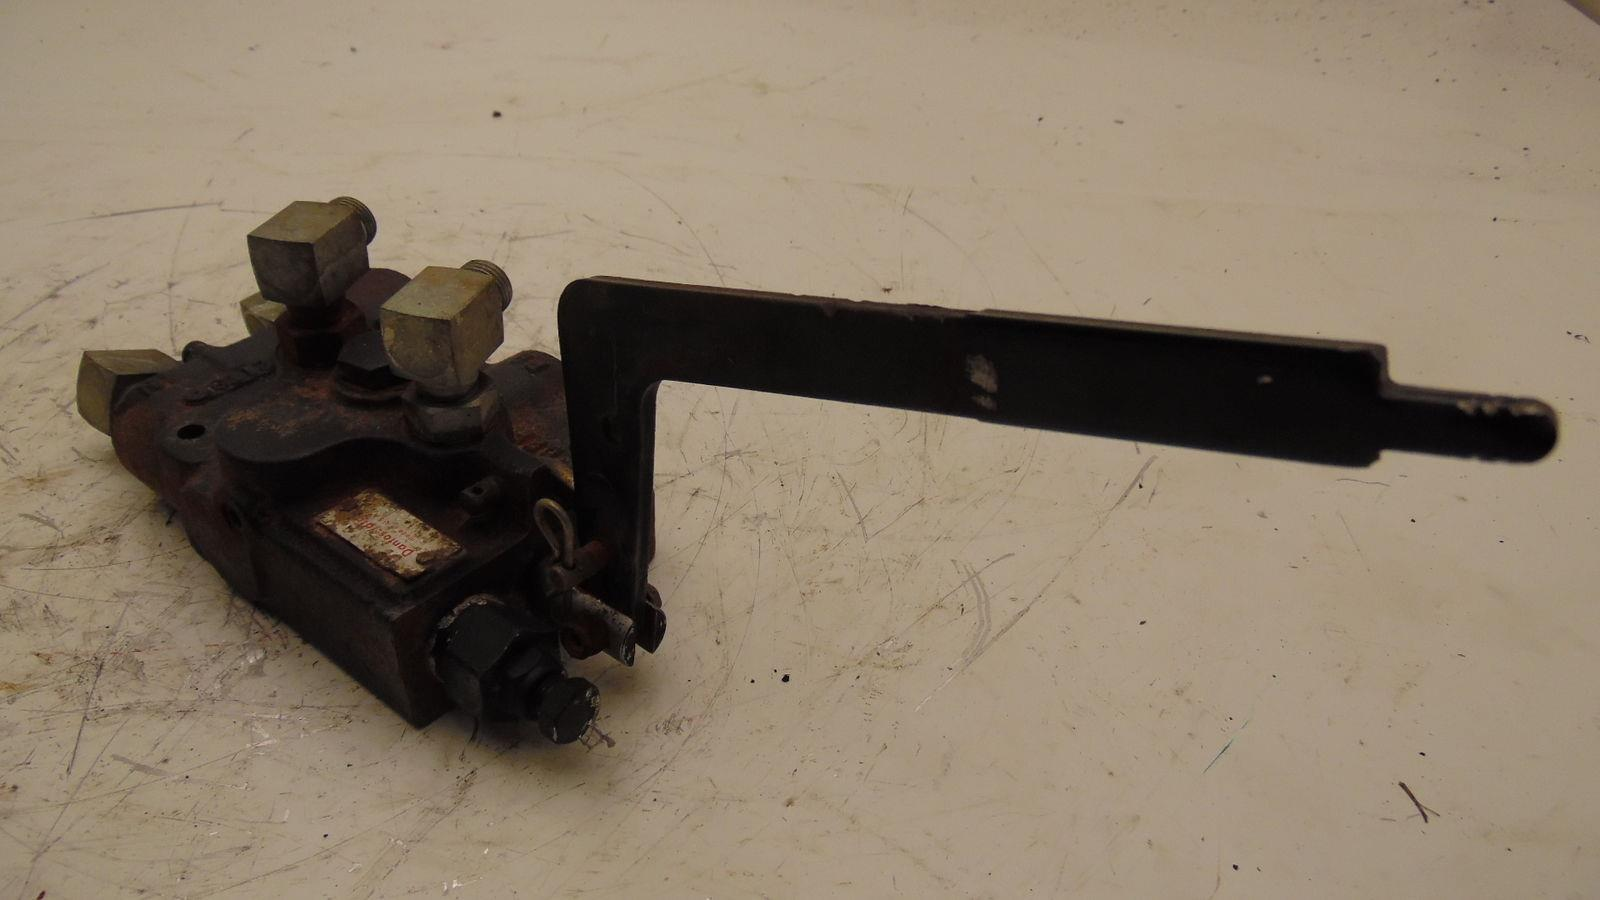 hight resolution of details about john deere 320 lawn tractor hydraulic lift pressure relief valve am117342